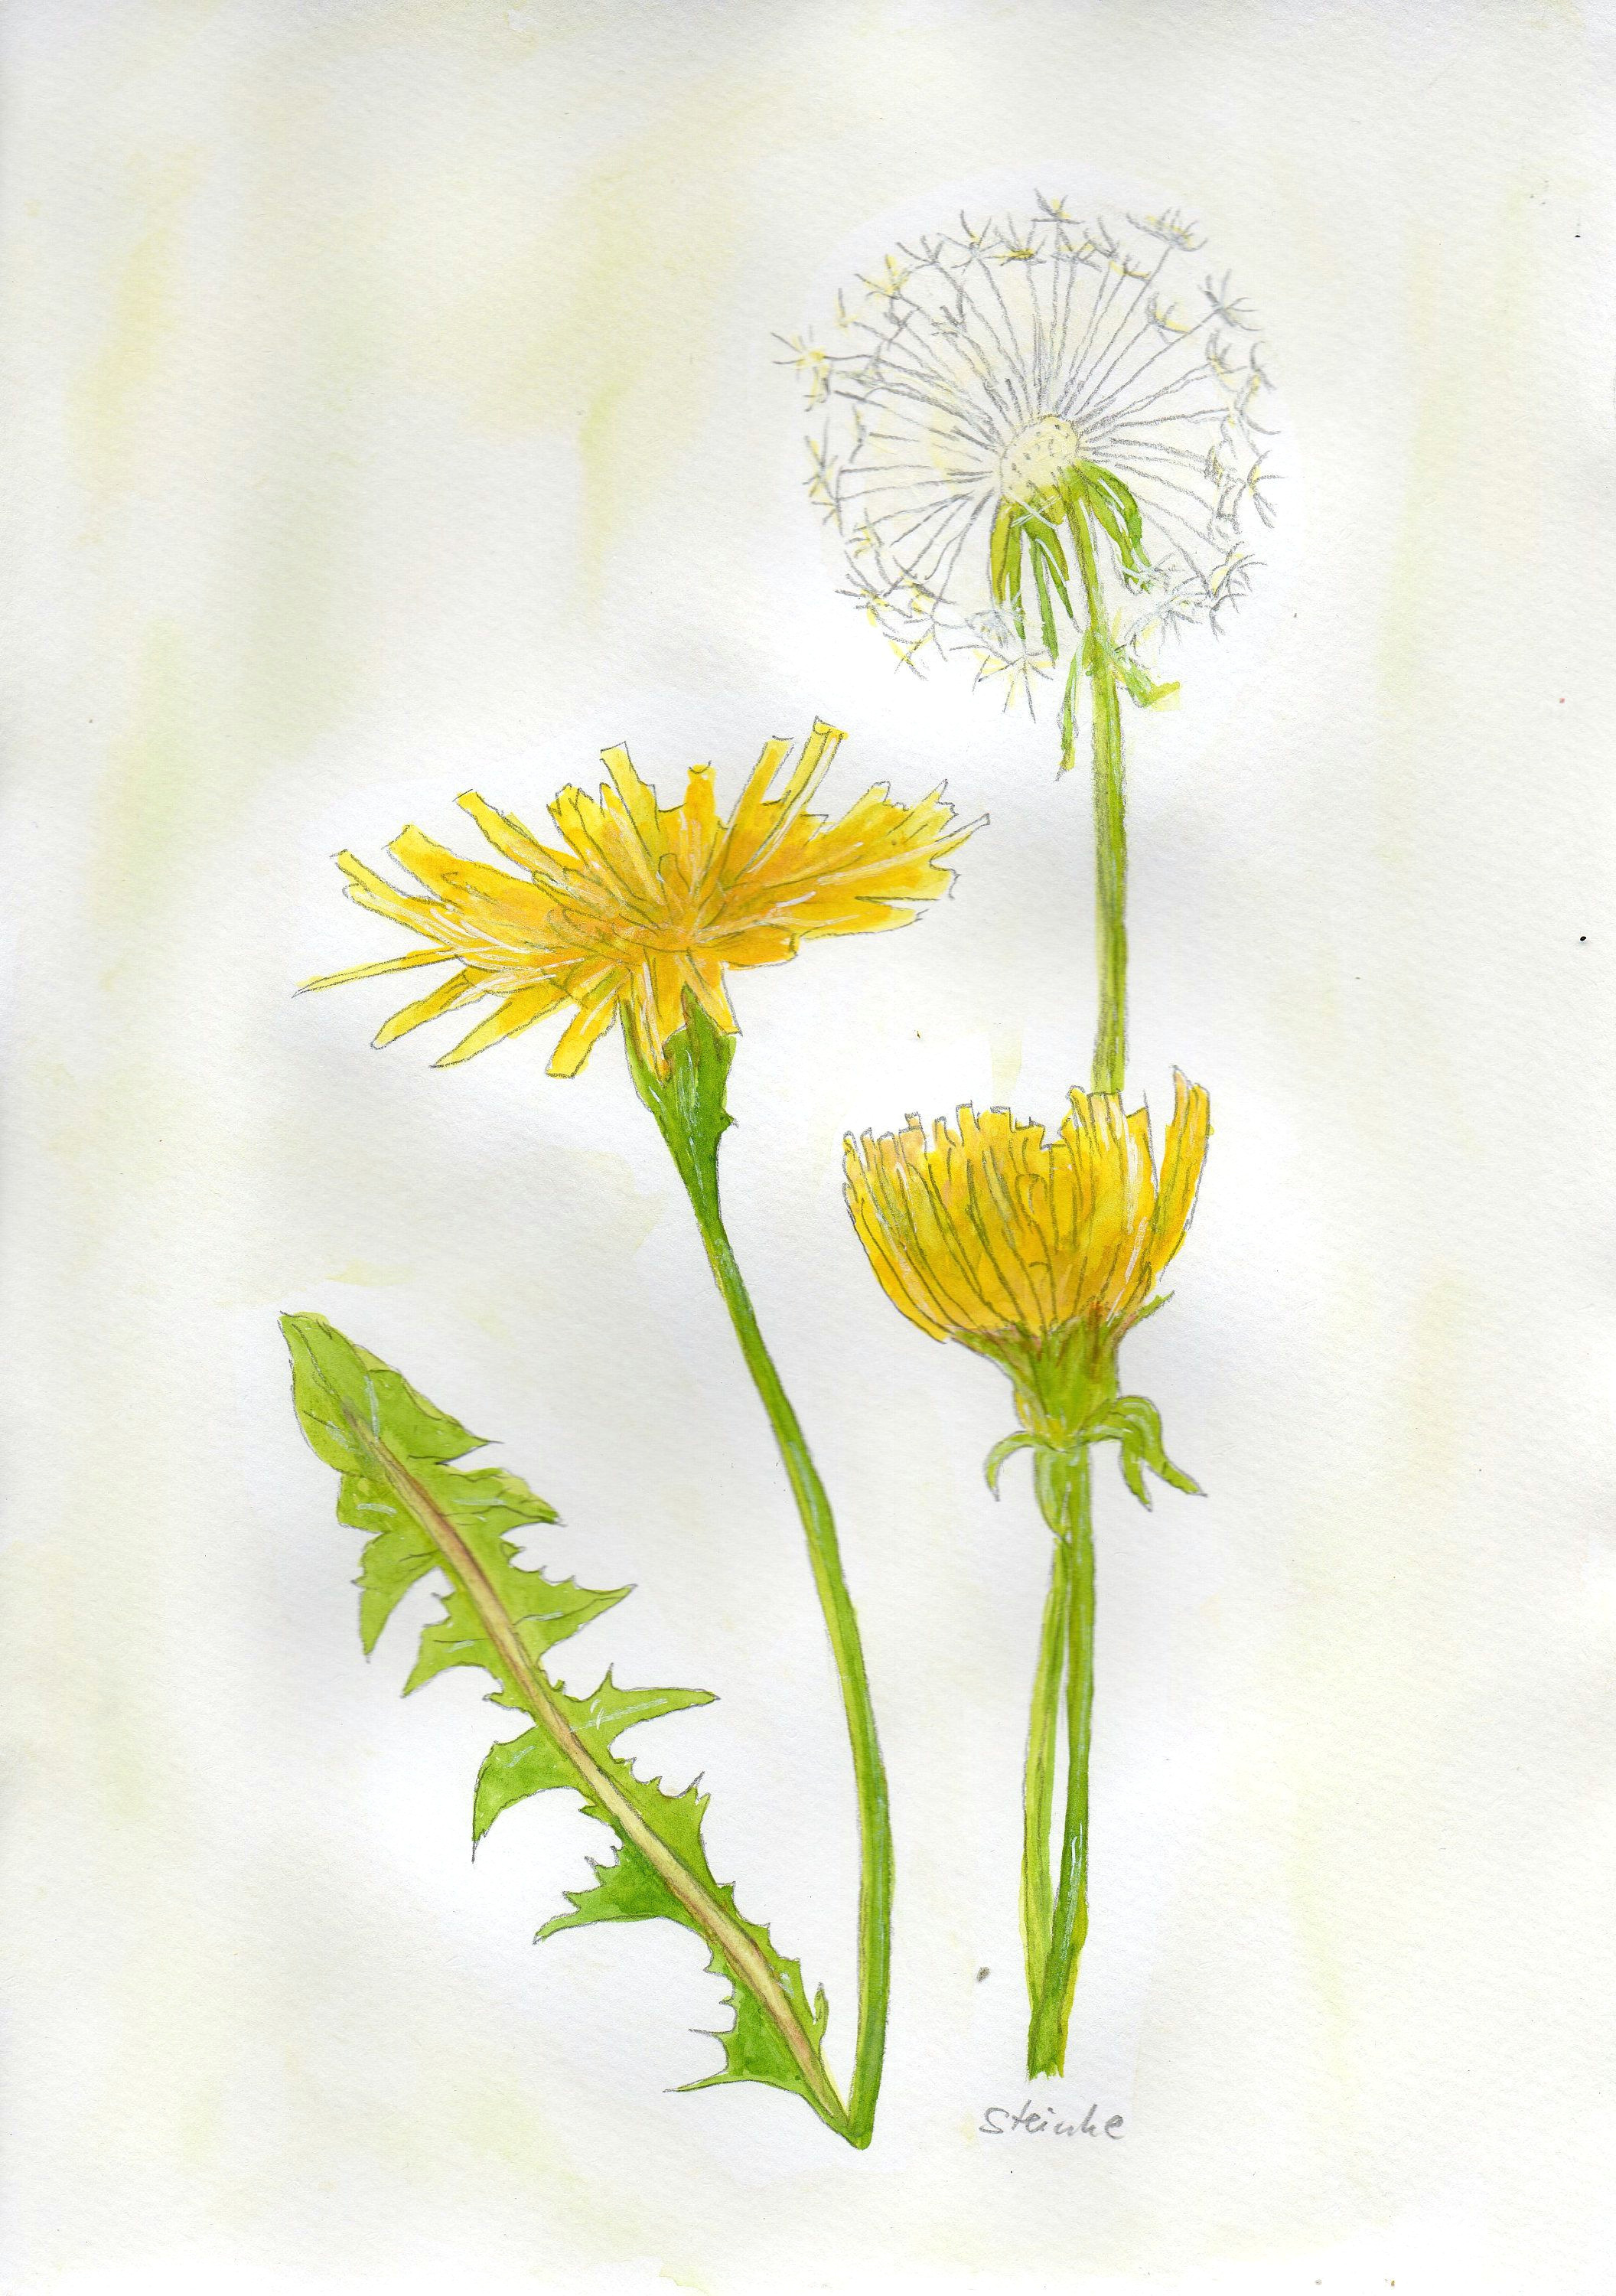 colorful drawings flower pictures beautiful paintings new art dandelions picture frames